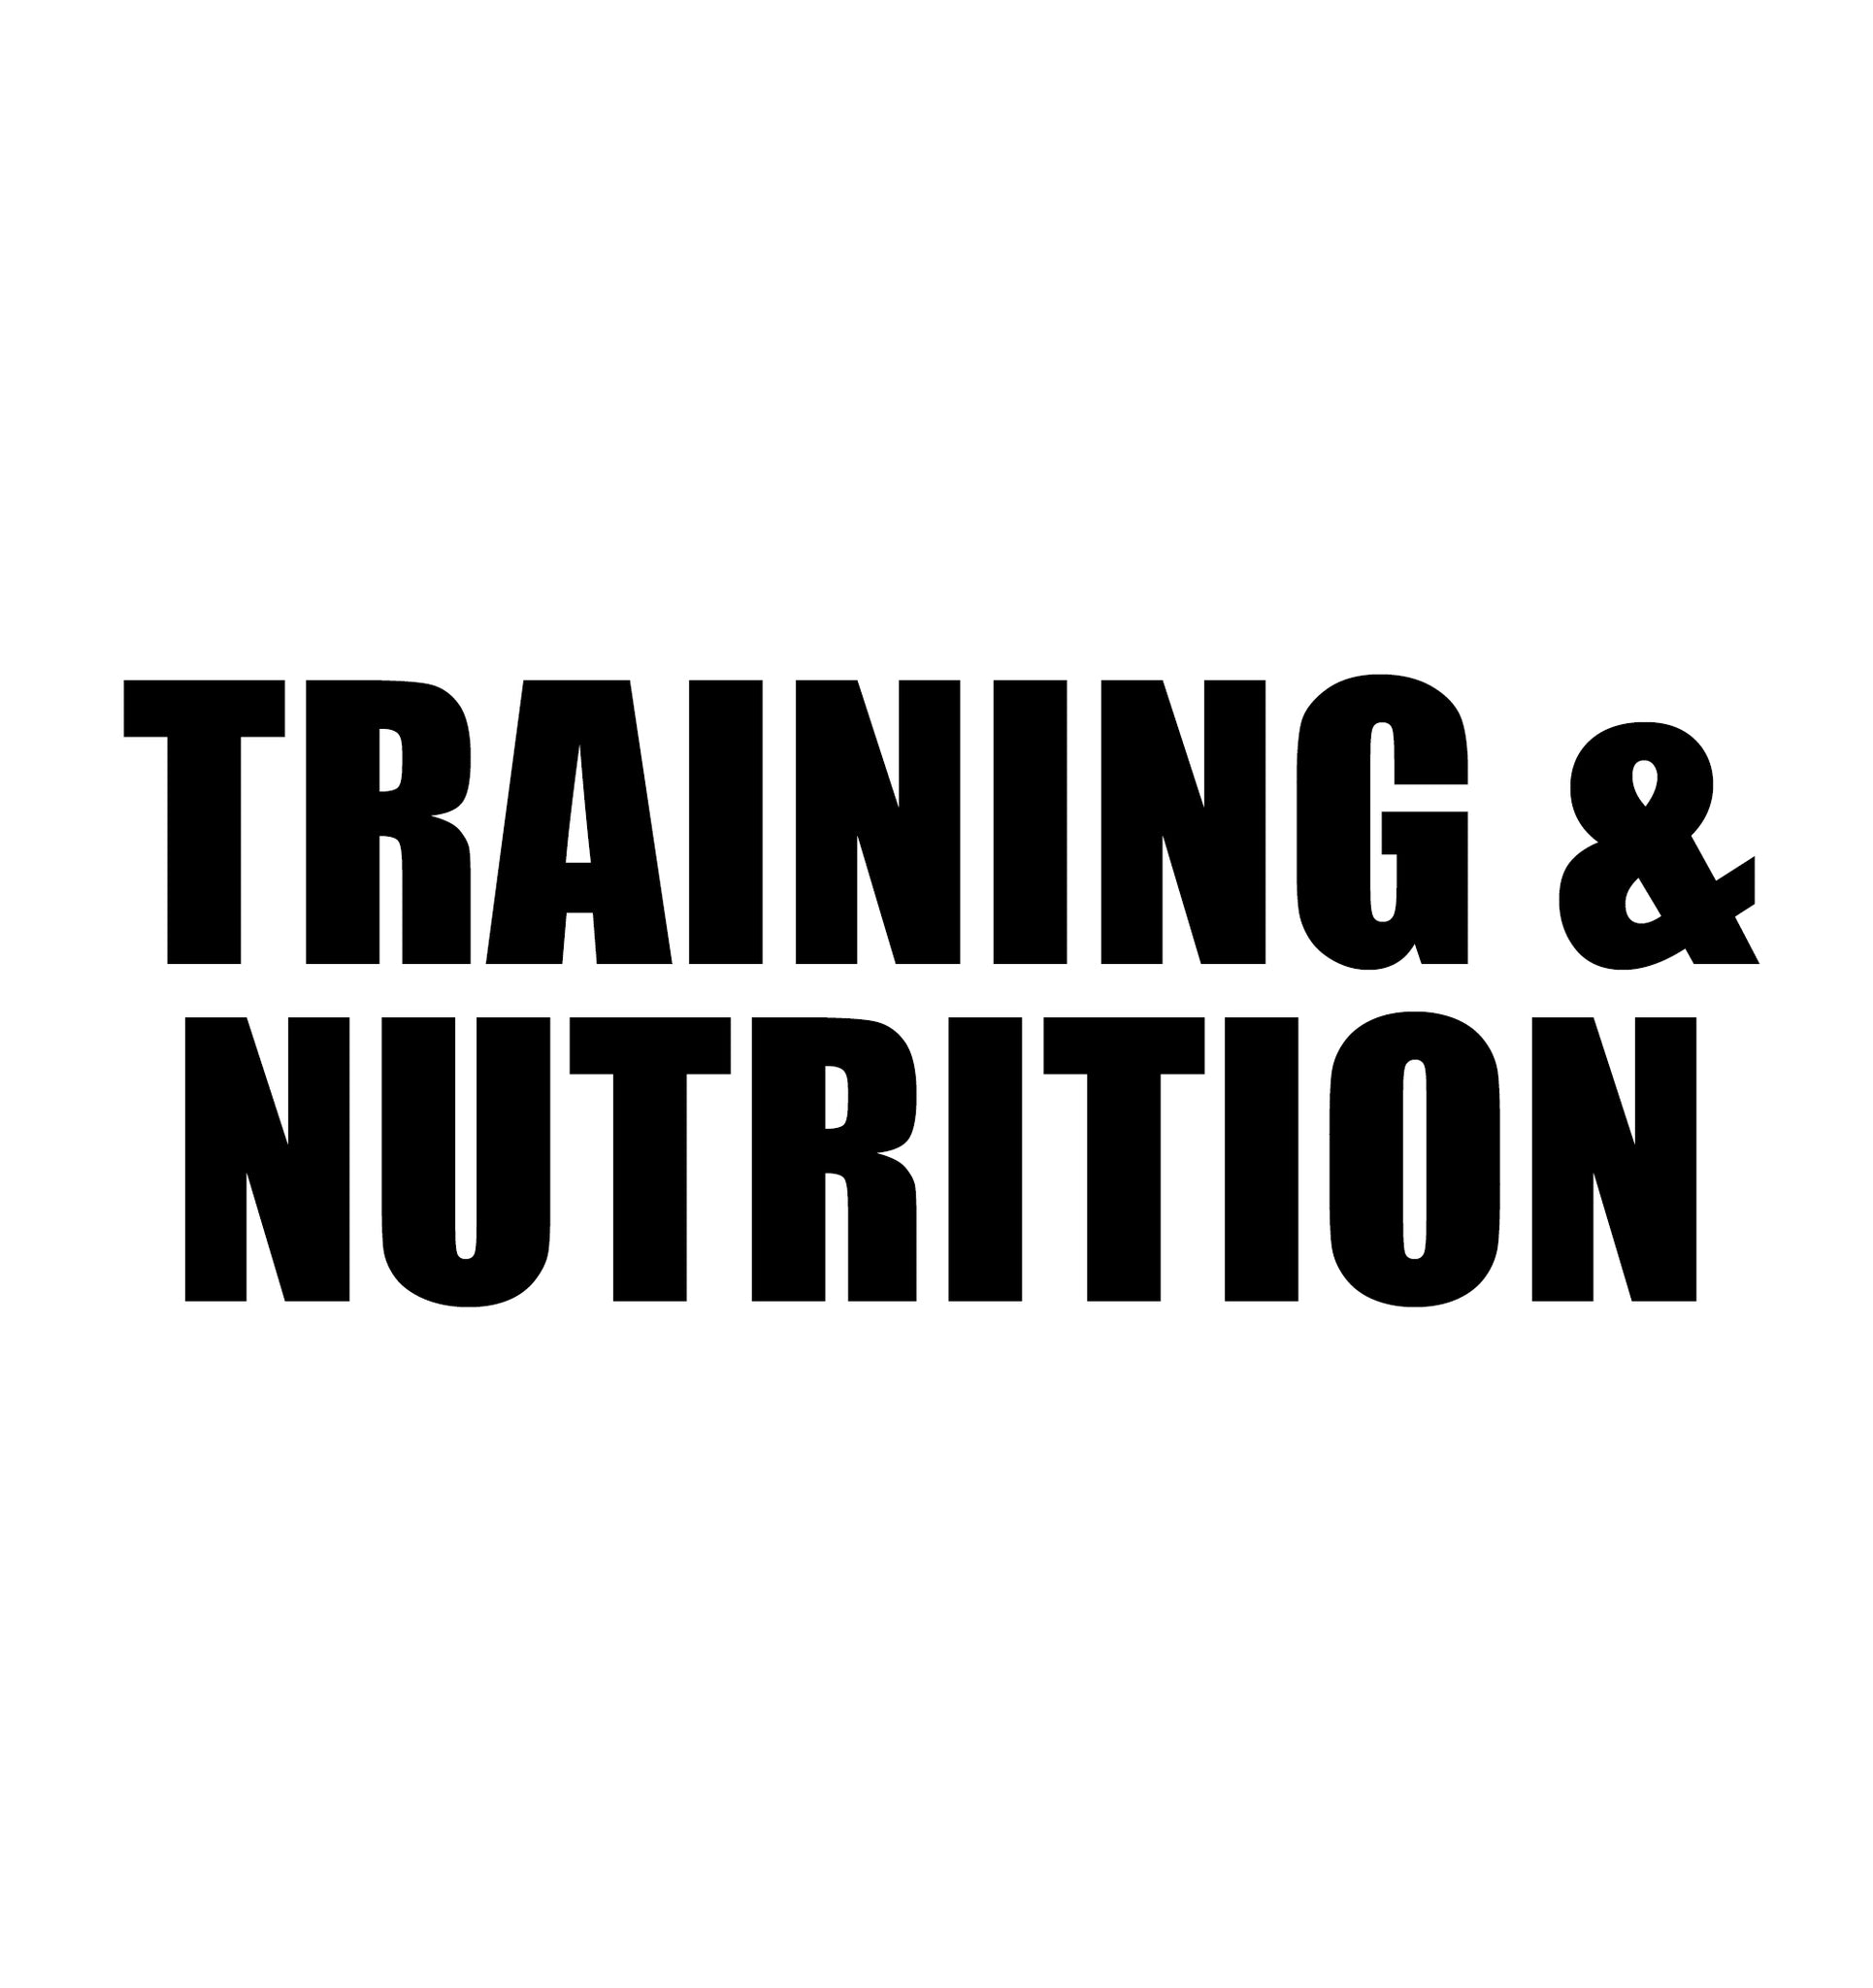 $250 Monthly Training & Nutrition